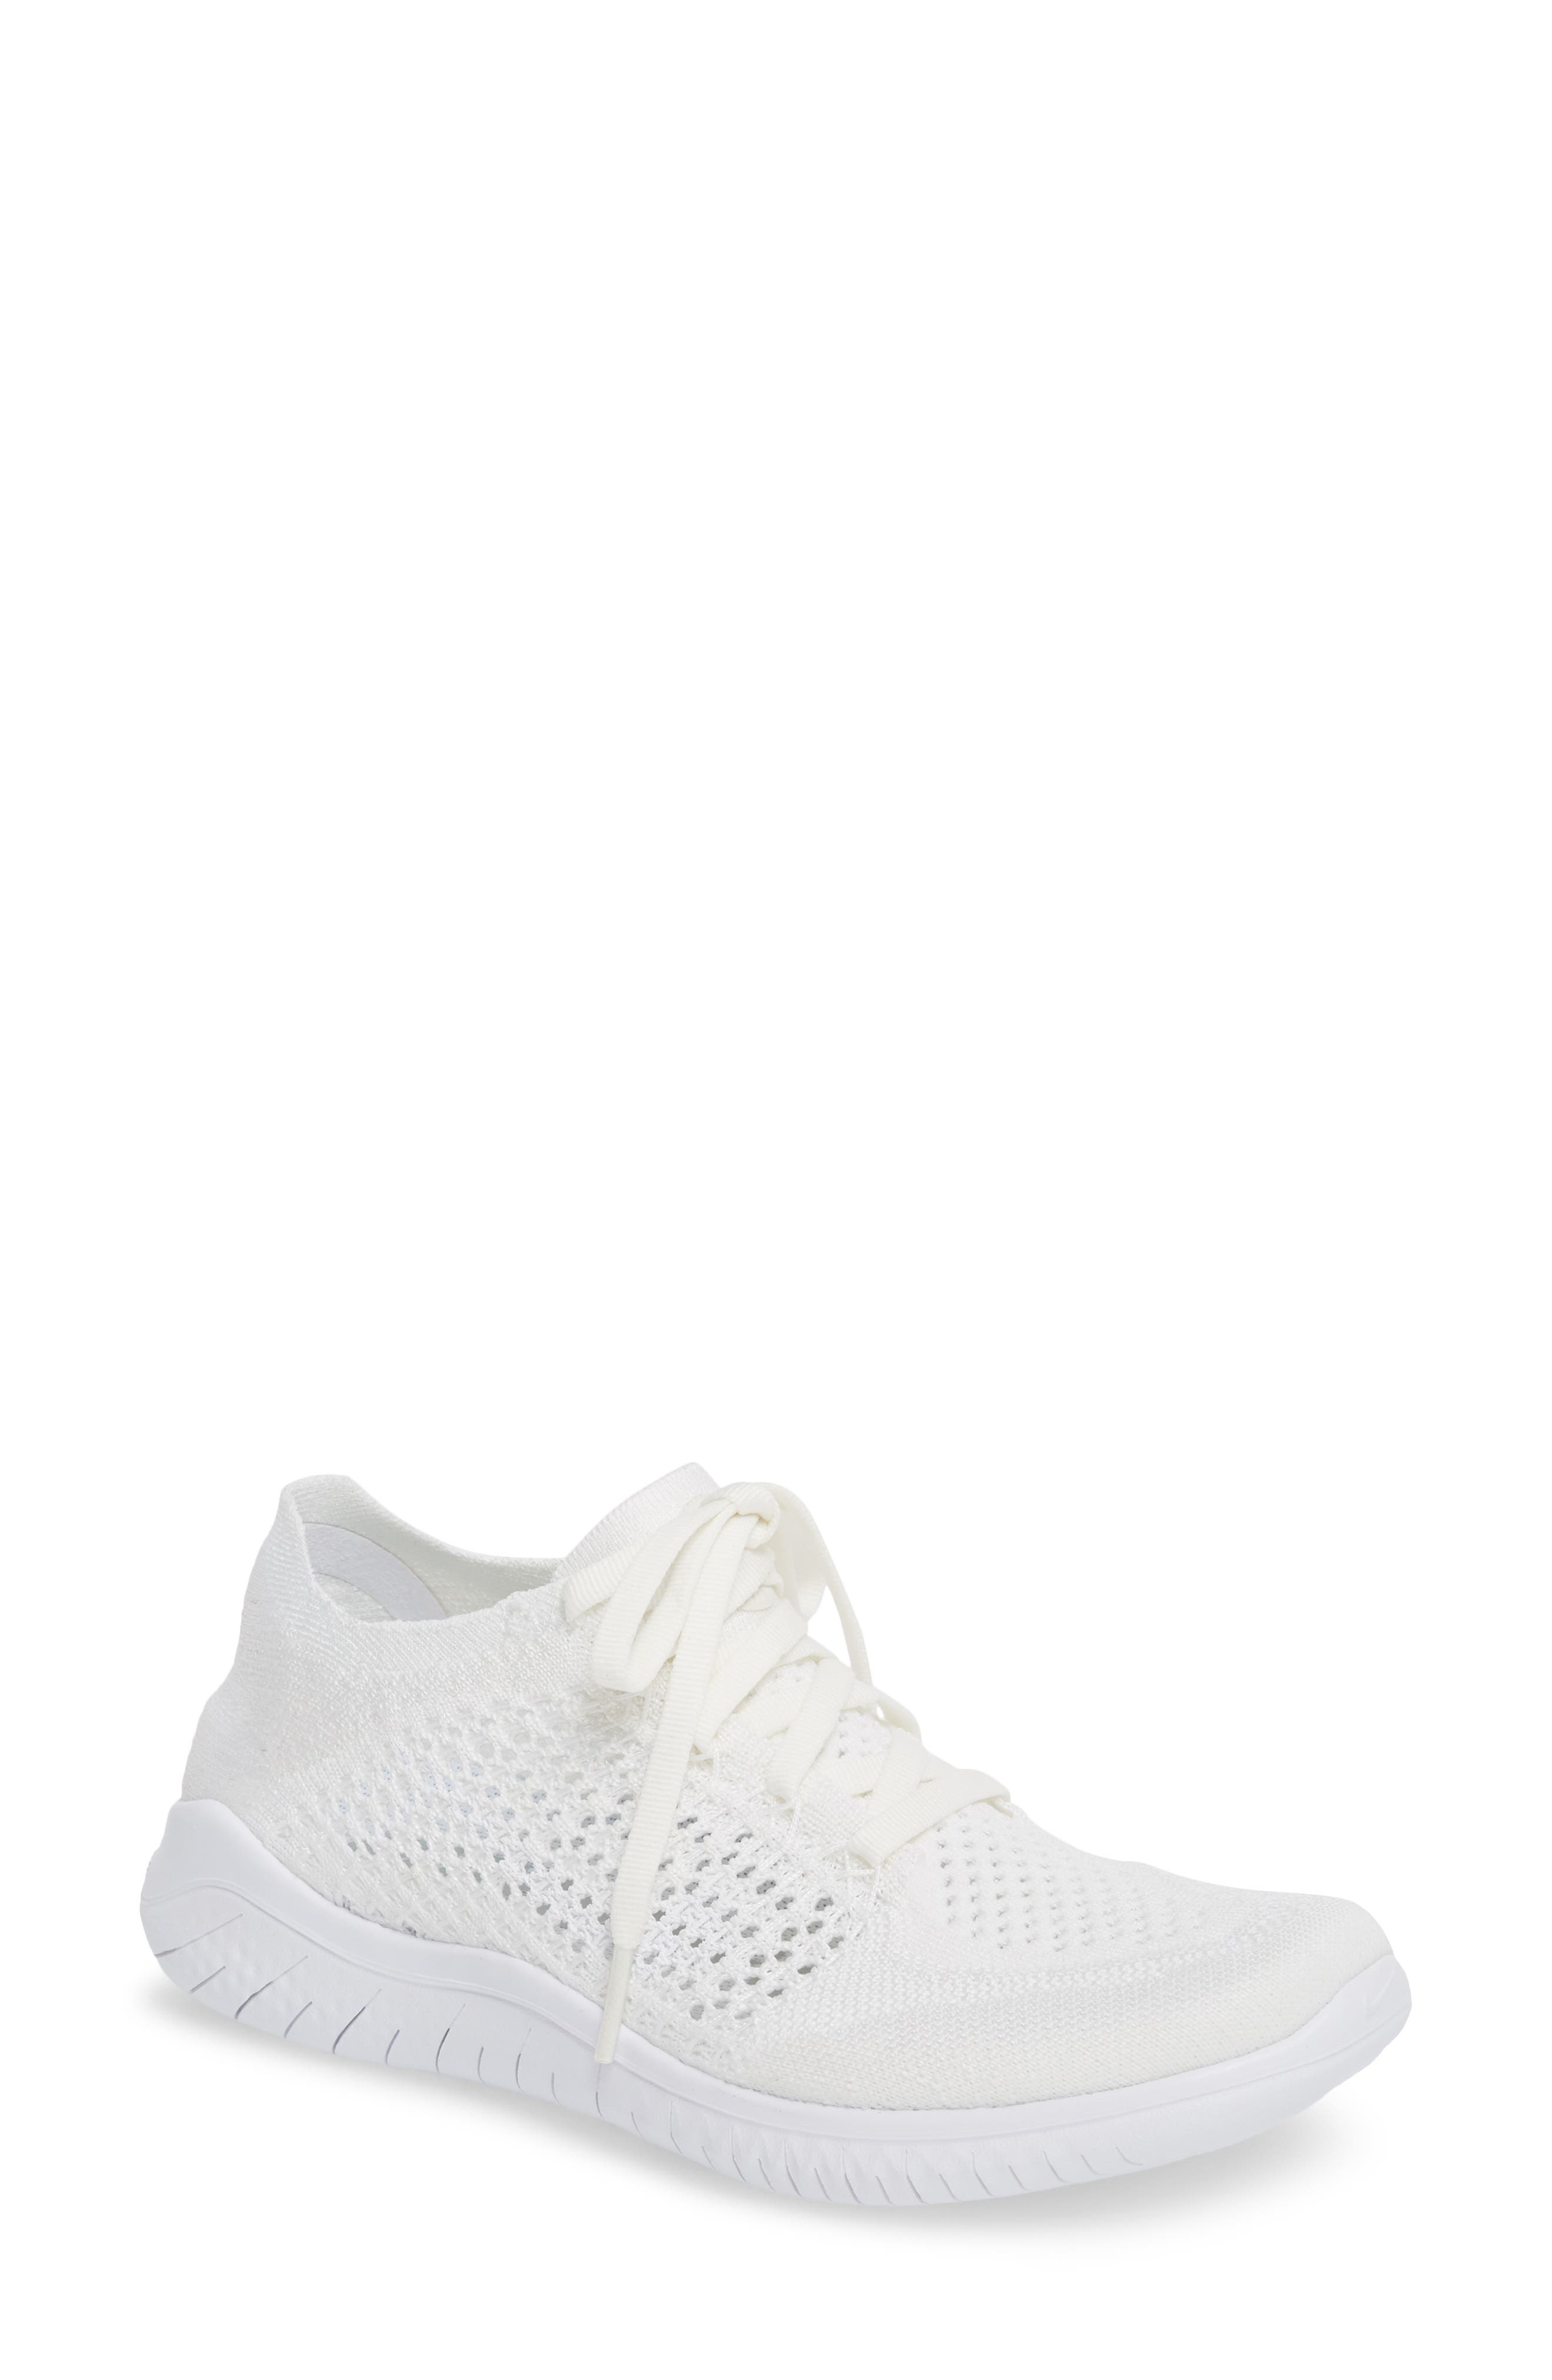 Free RN Flyknit 2018 Running Shoe,                         Main,                         color, White/ White